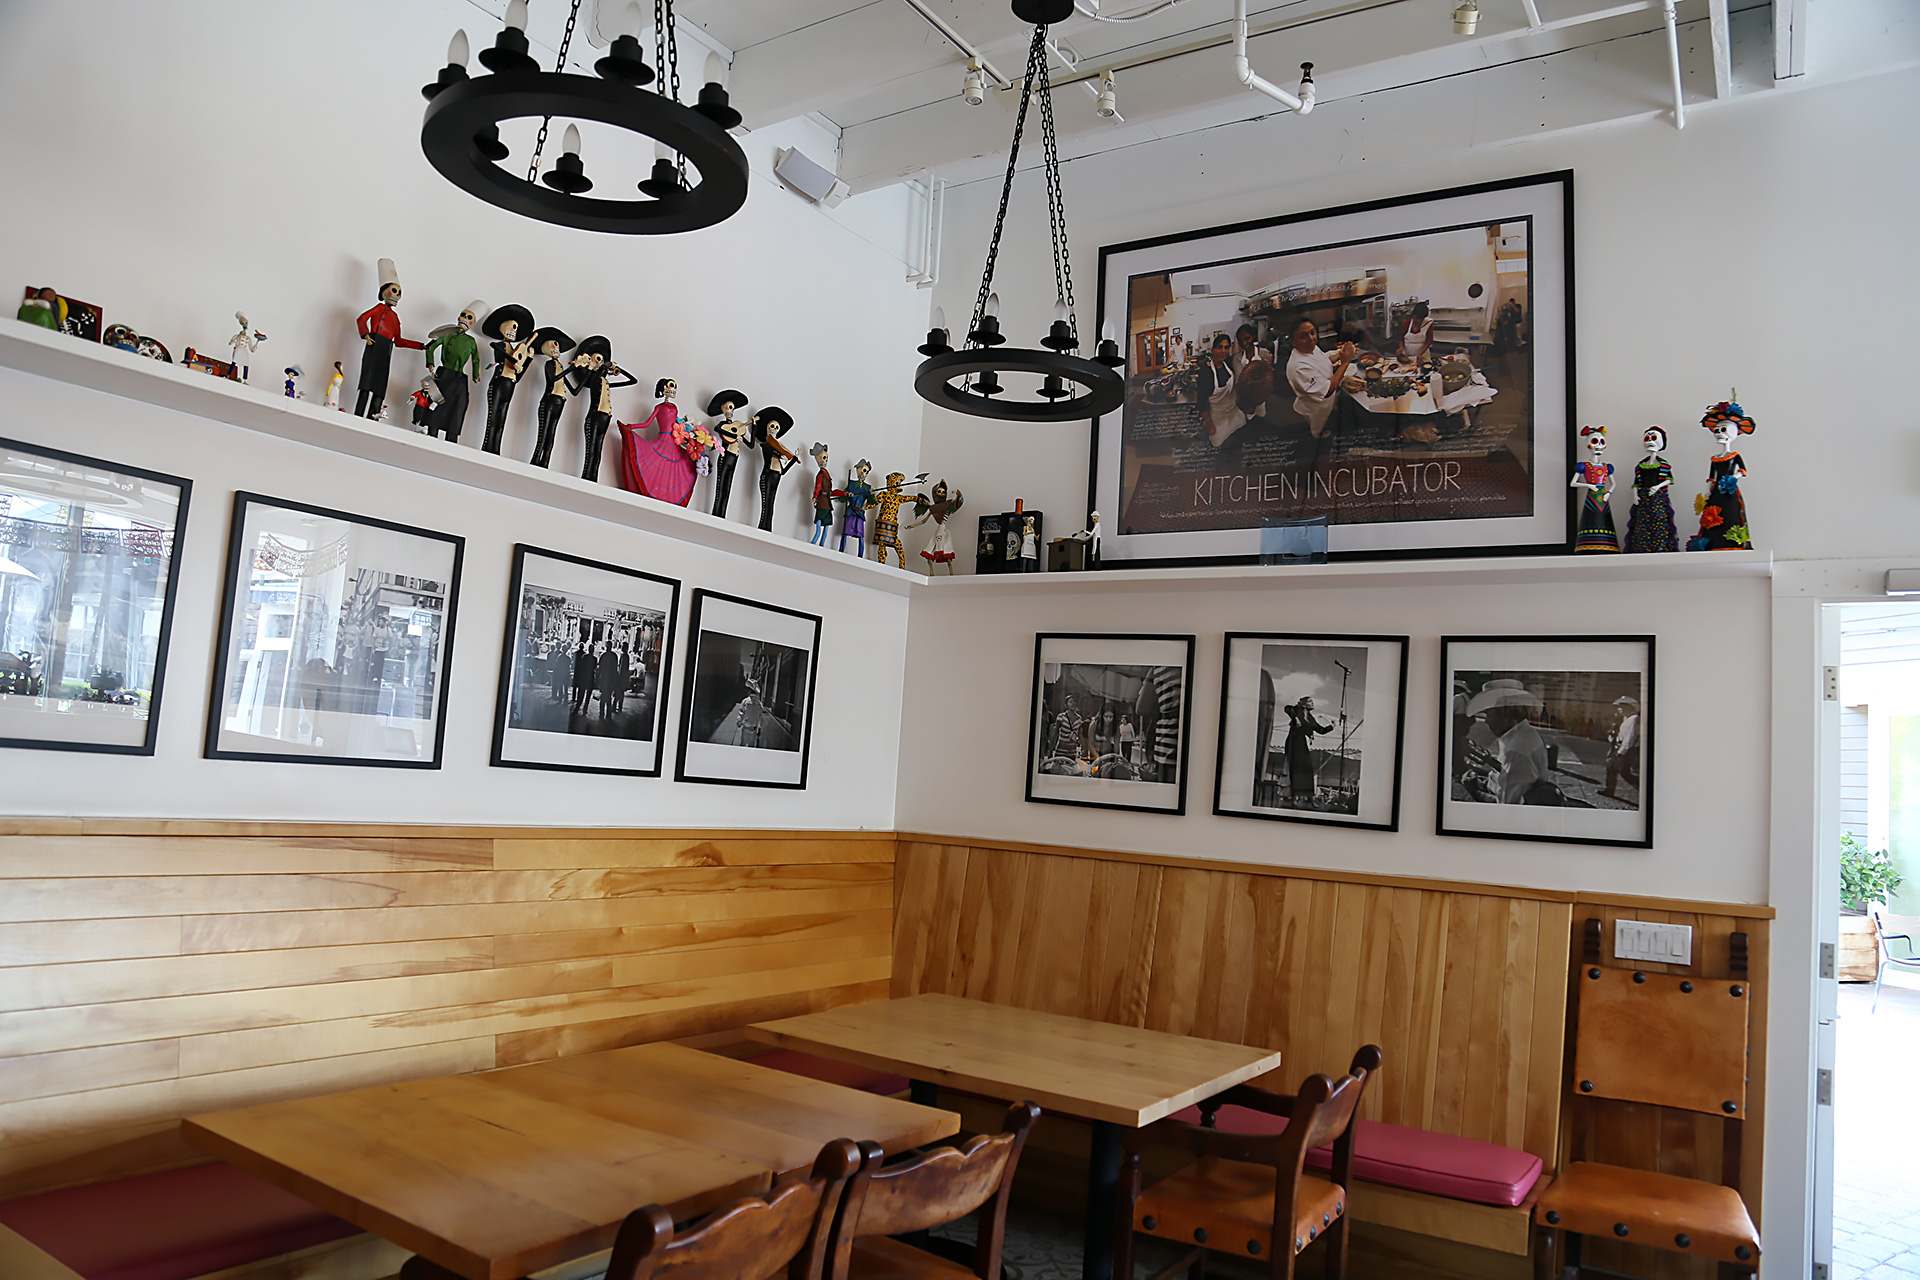 Inside El Huarache Loco with 2011 photo of her in La Cocina incubator's kitchen on the wall.